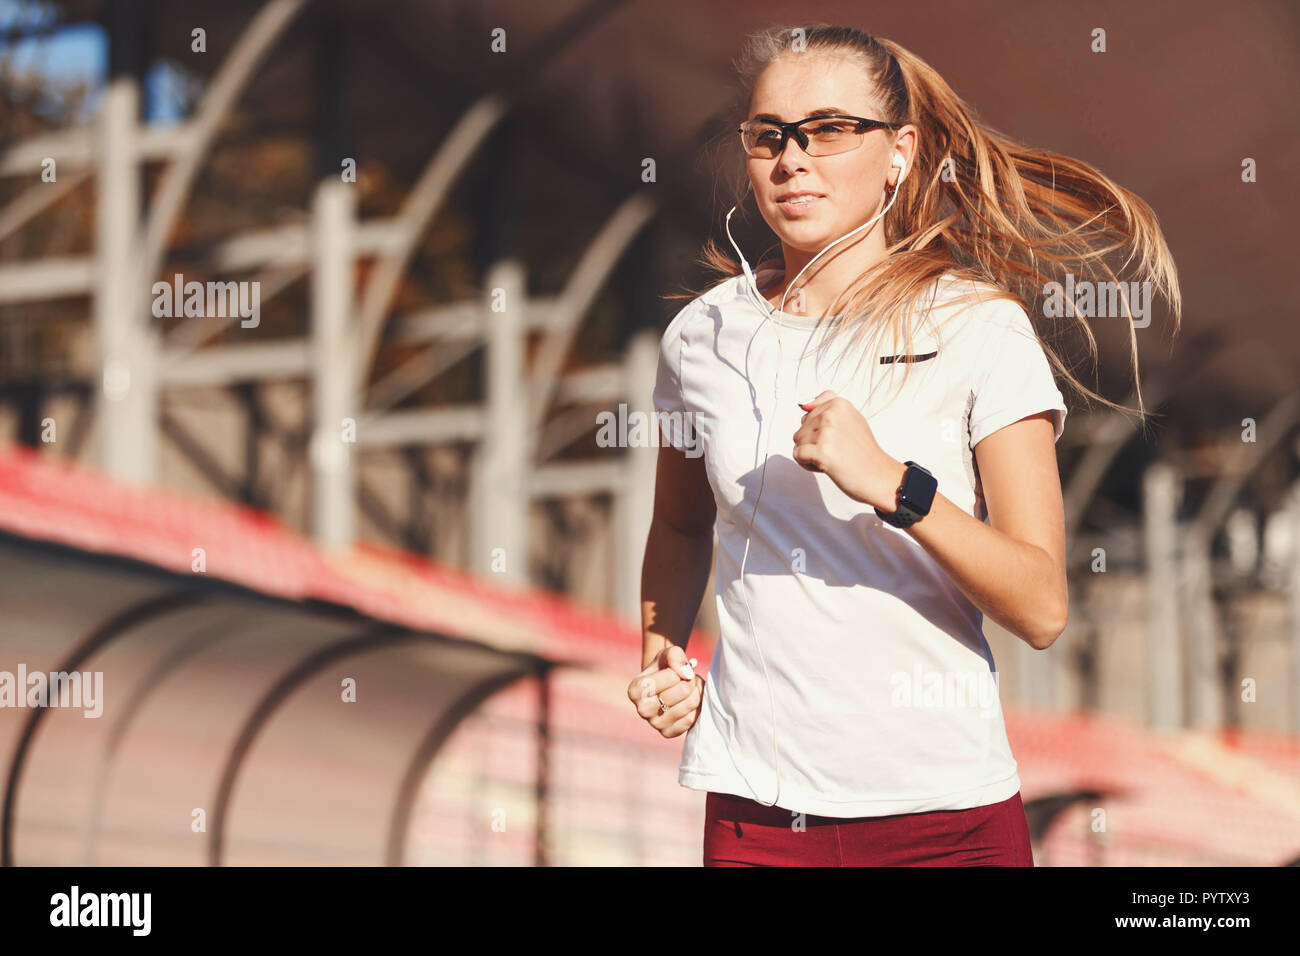 Fitness blonde long haired woman in sportswear jogging while listening music at the football stadium outdoor, healthy lifestyle and people concept - Stock Photo